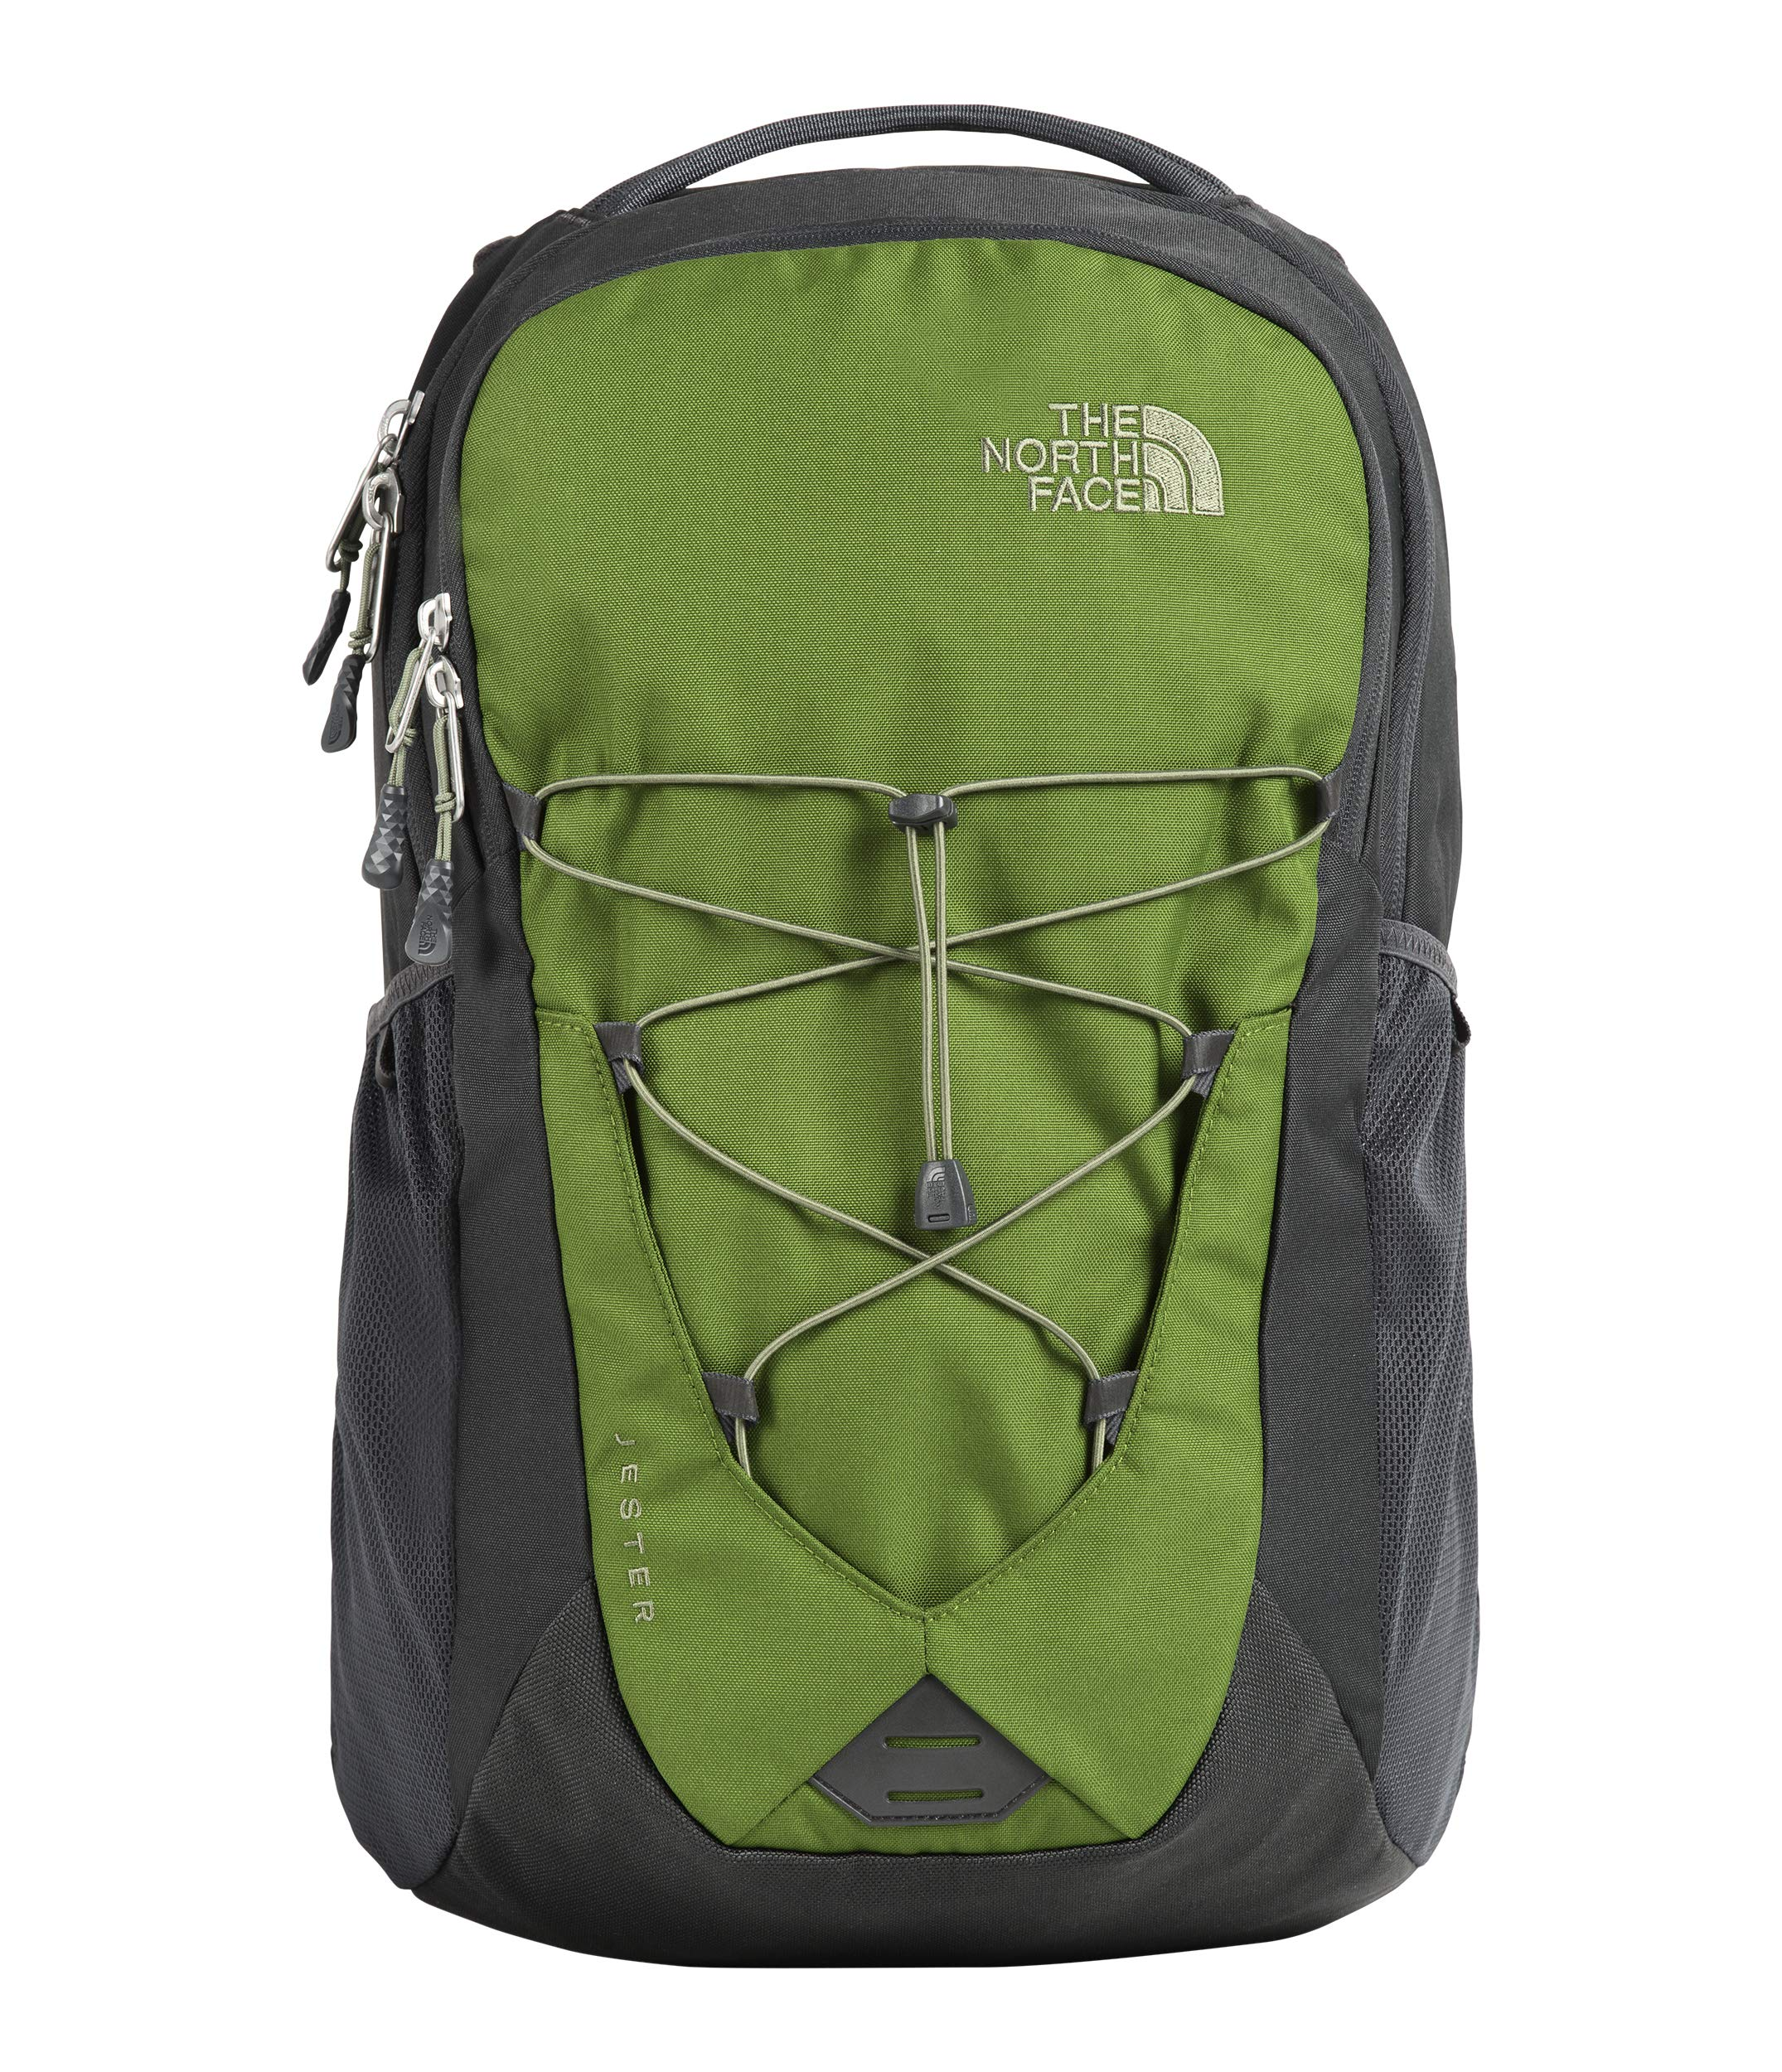 The North Face Jester, Garden Green/Asphalt Grey, OS